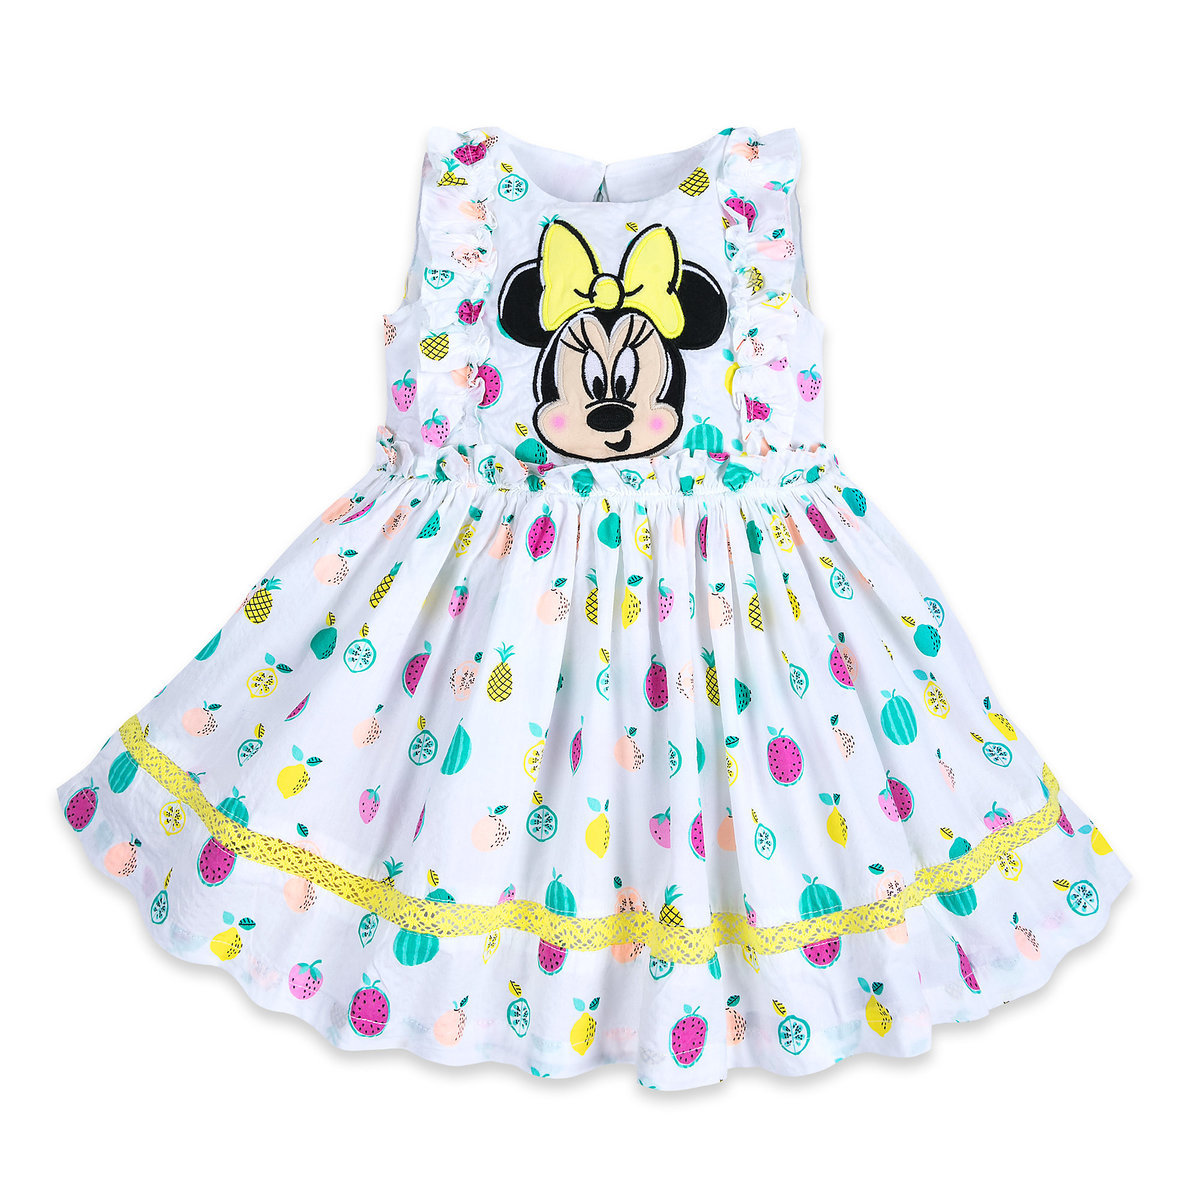 e9646b2af Product Image of Minnie Mouse Fruit Print Dress Set for Baby # 1